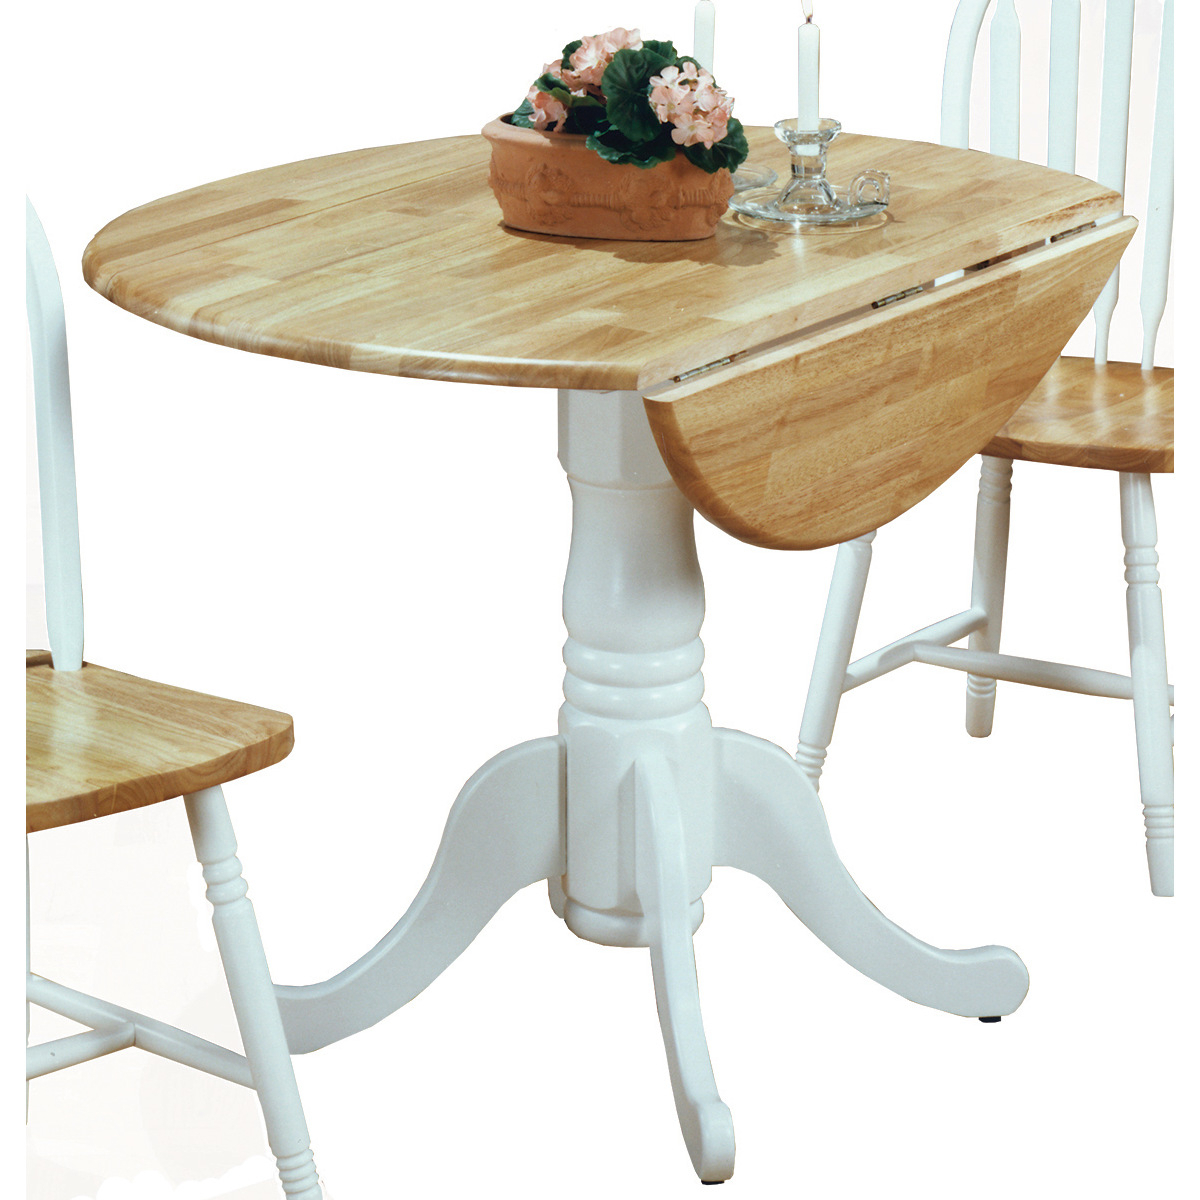 Boothby Drop Leaf Rubberwood Solid Wood Pedestal Dining Tables Within Newest 5140wtdt Drop Leaf Pedestal Table (View 6 of 20)